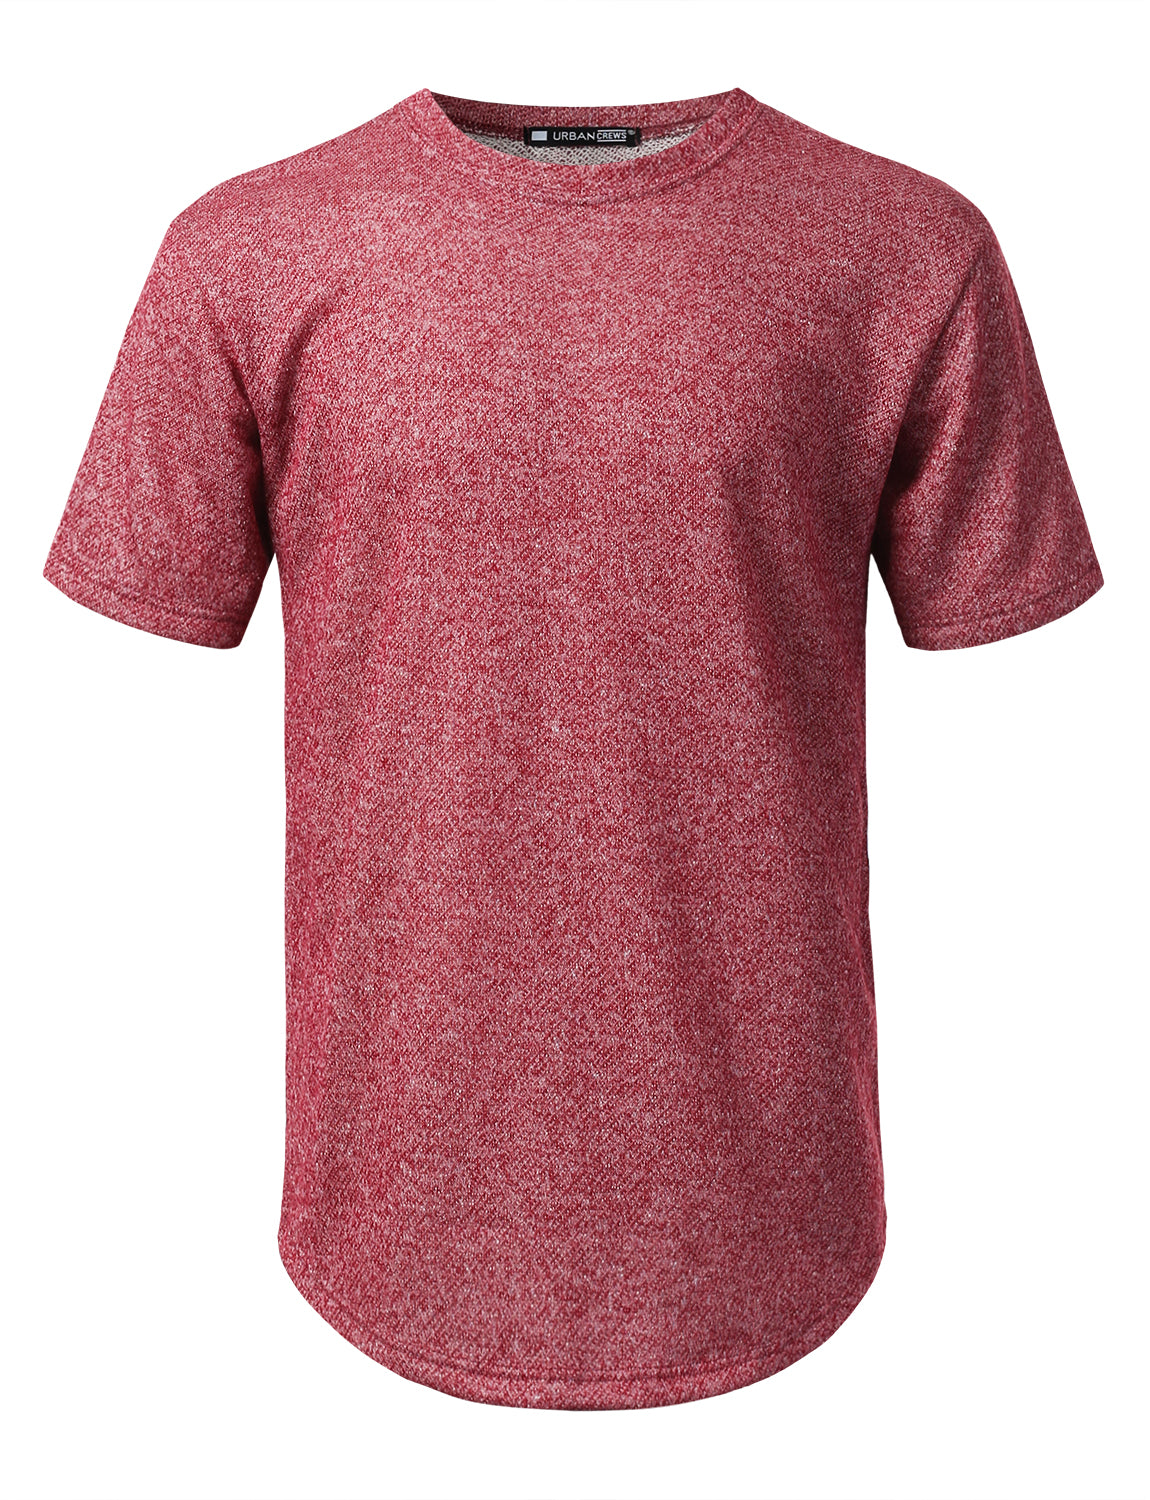 1654d51a2 BURGUNDY Thick French Terry T-shirt - URBANCREWS